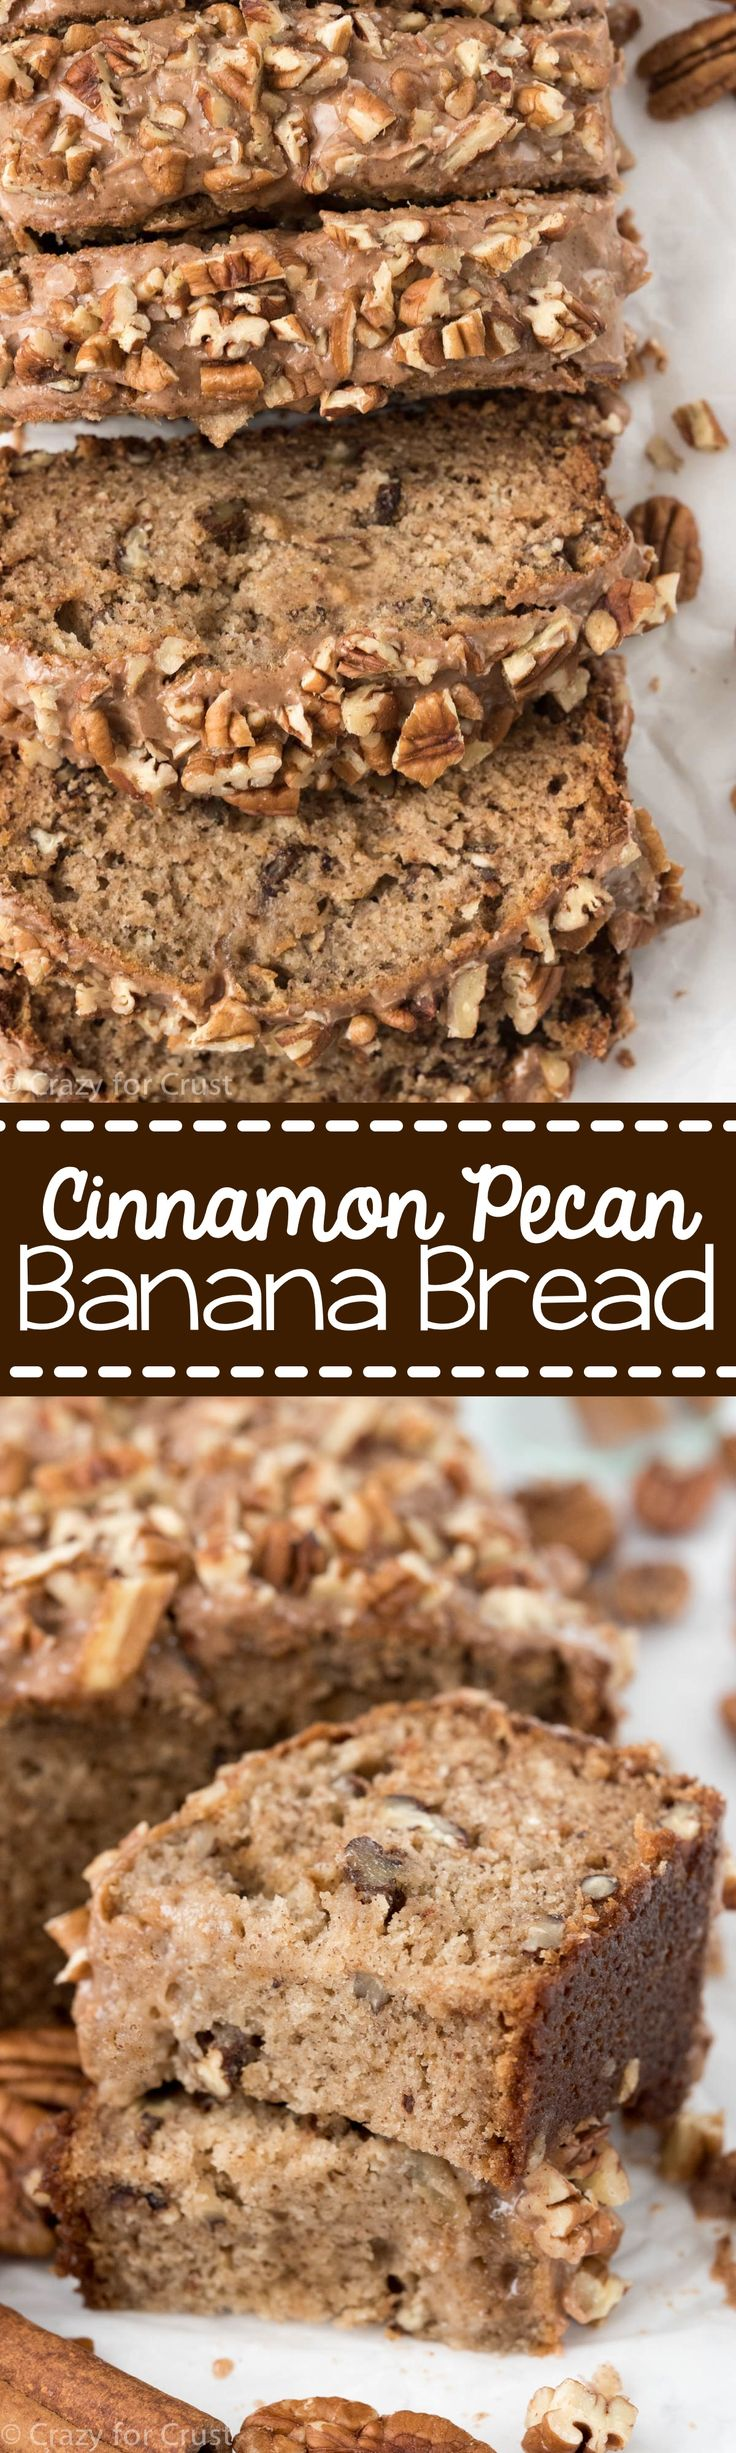 Cinnamon Pecan Banana Bread - the perfect easy banana bread recipe! My mom's banana bread recipe filled with cinnamon, pecans, and a cinnamon glaze!